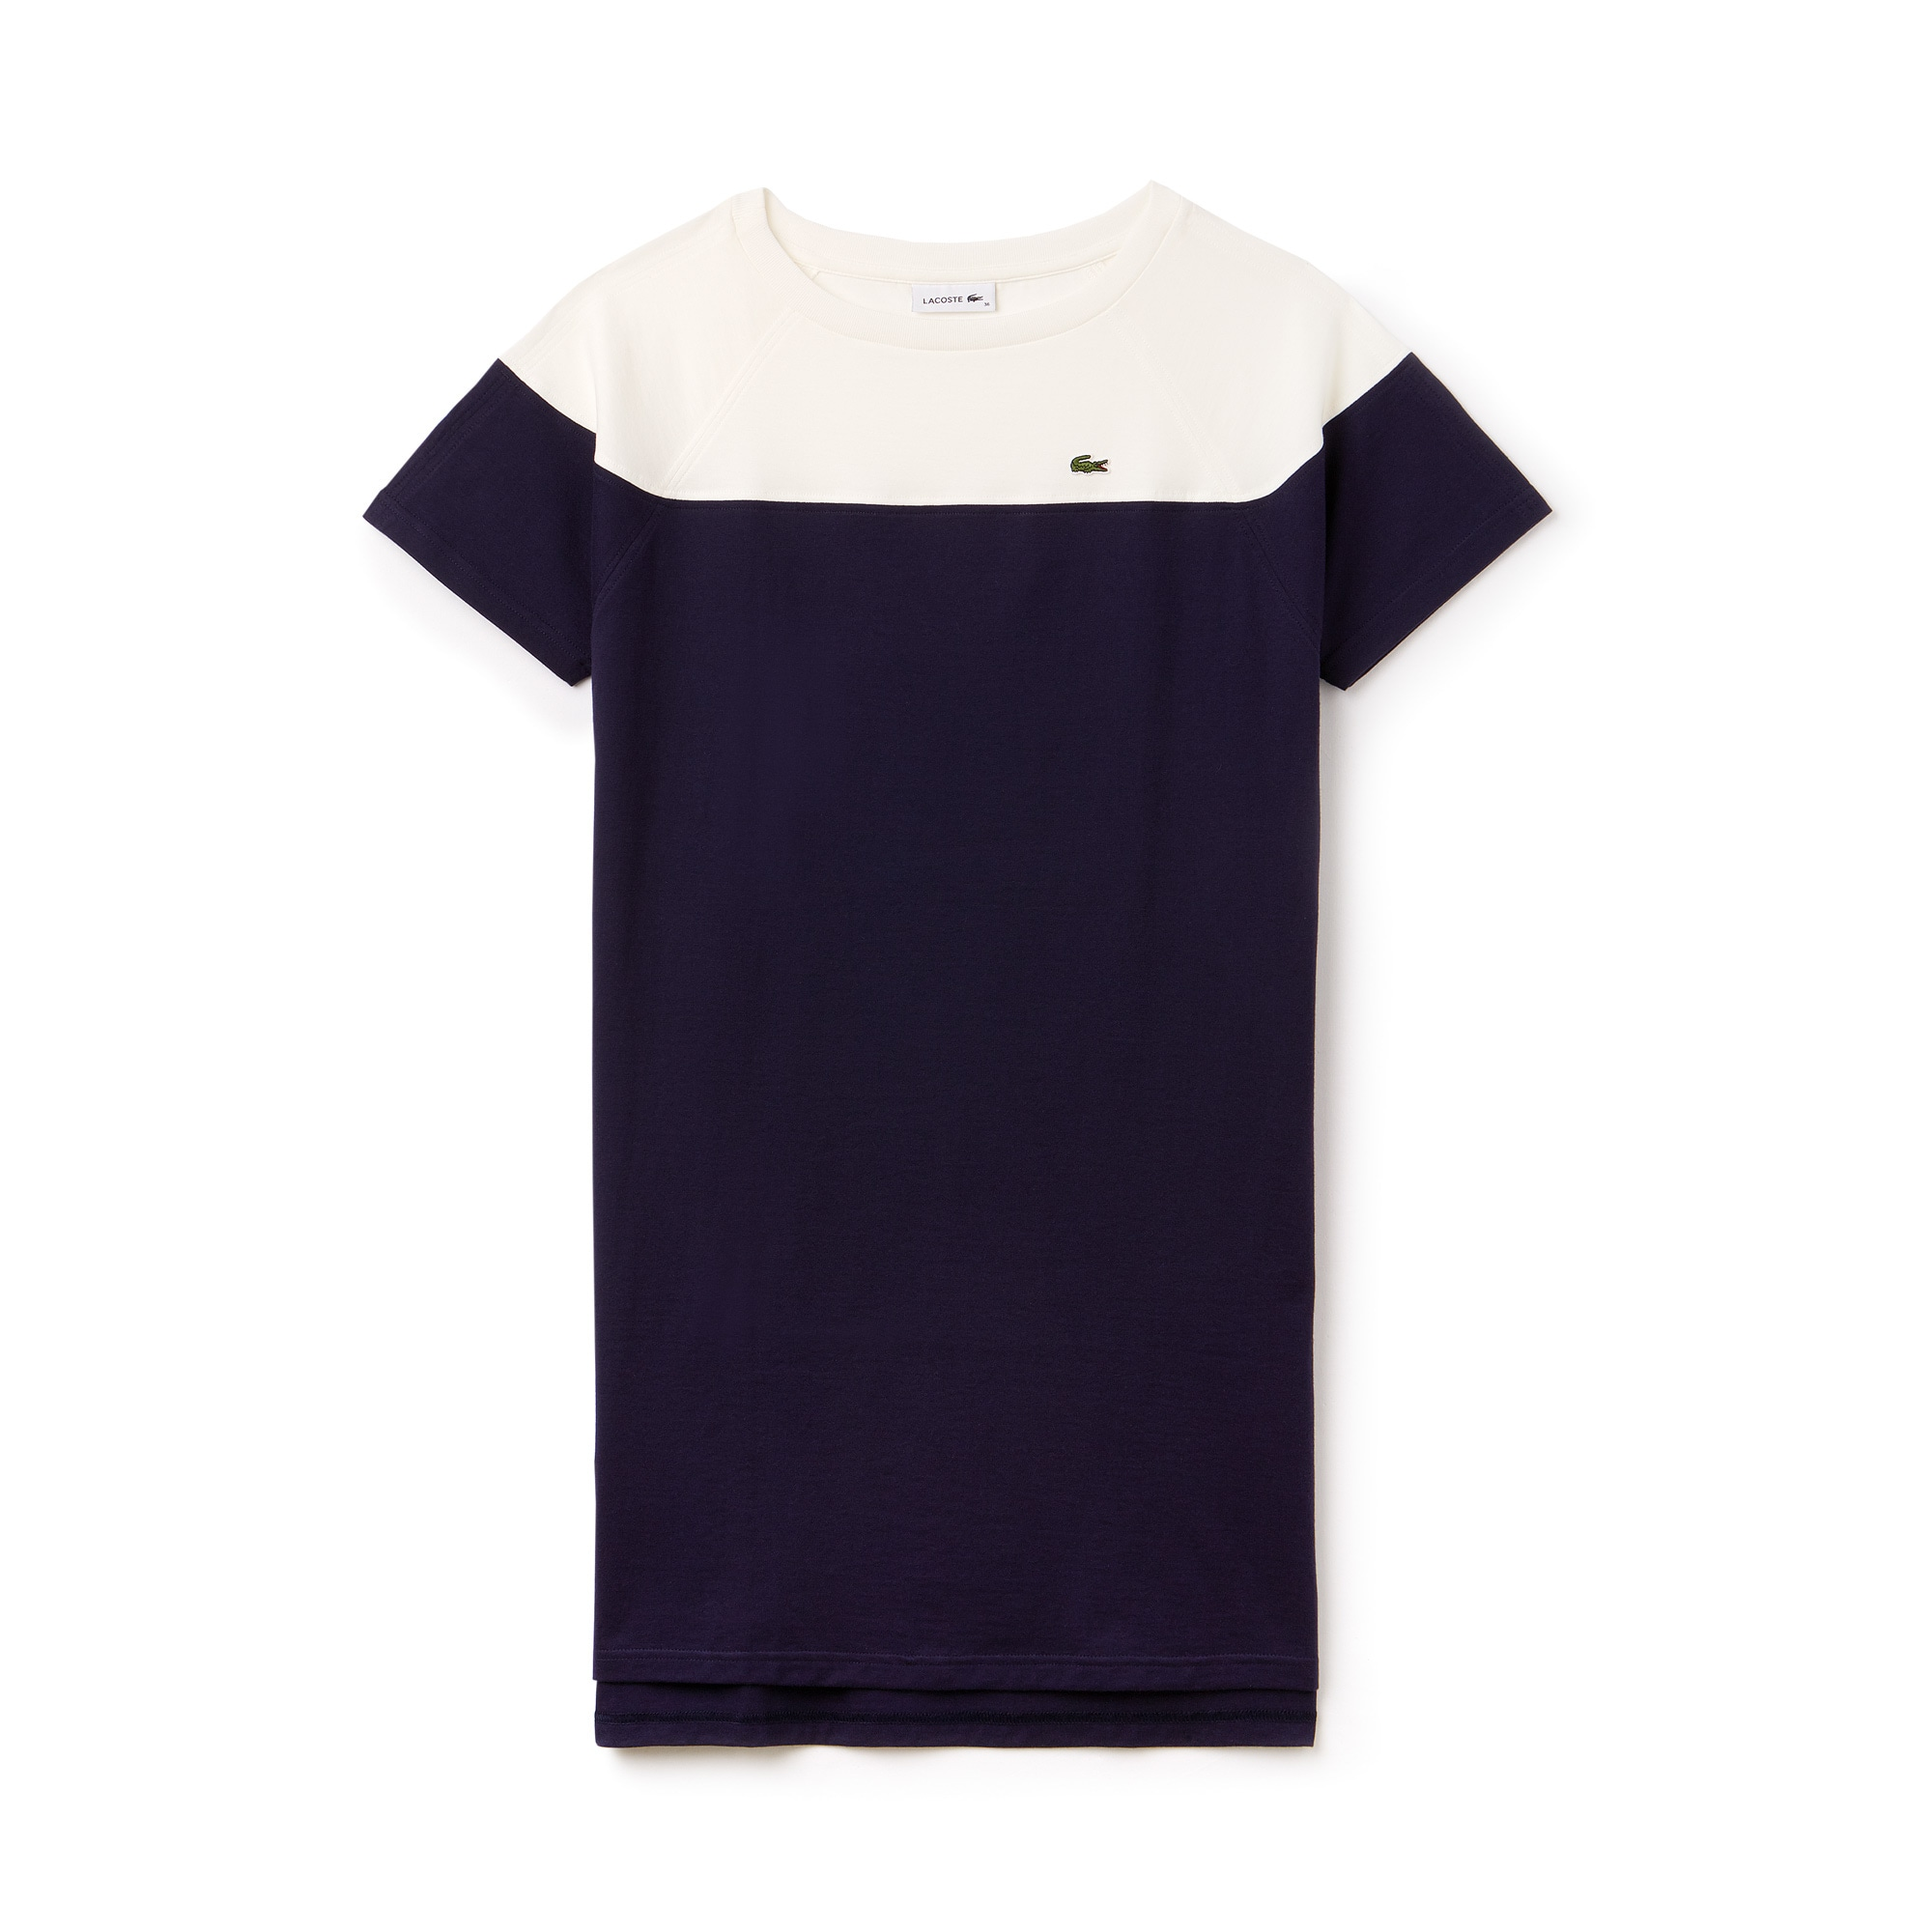 Abito a t-shirt con collo a barchetta in jersey di cotone color block